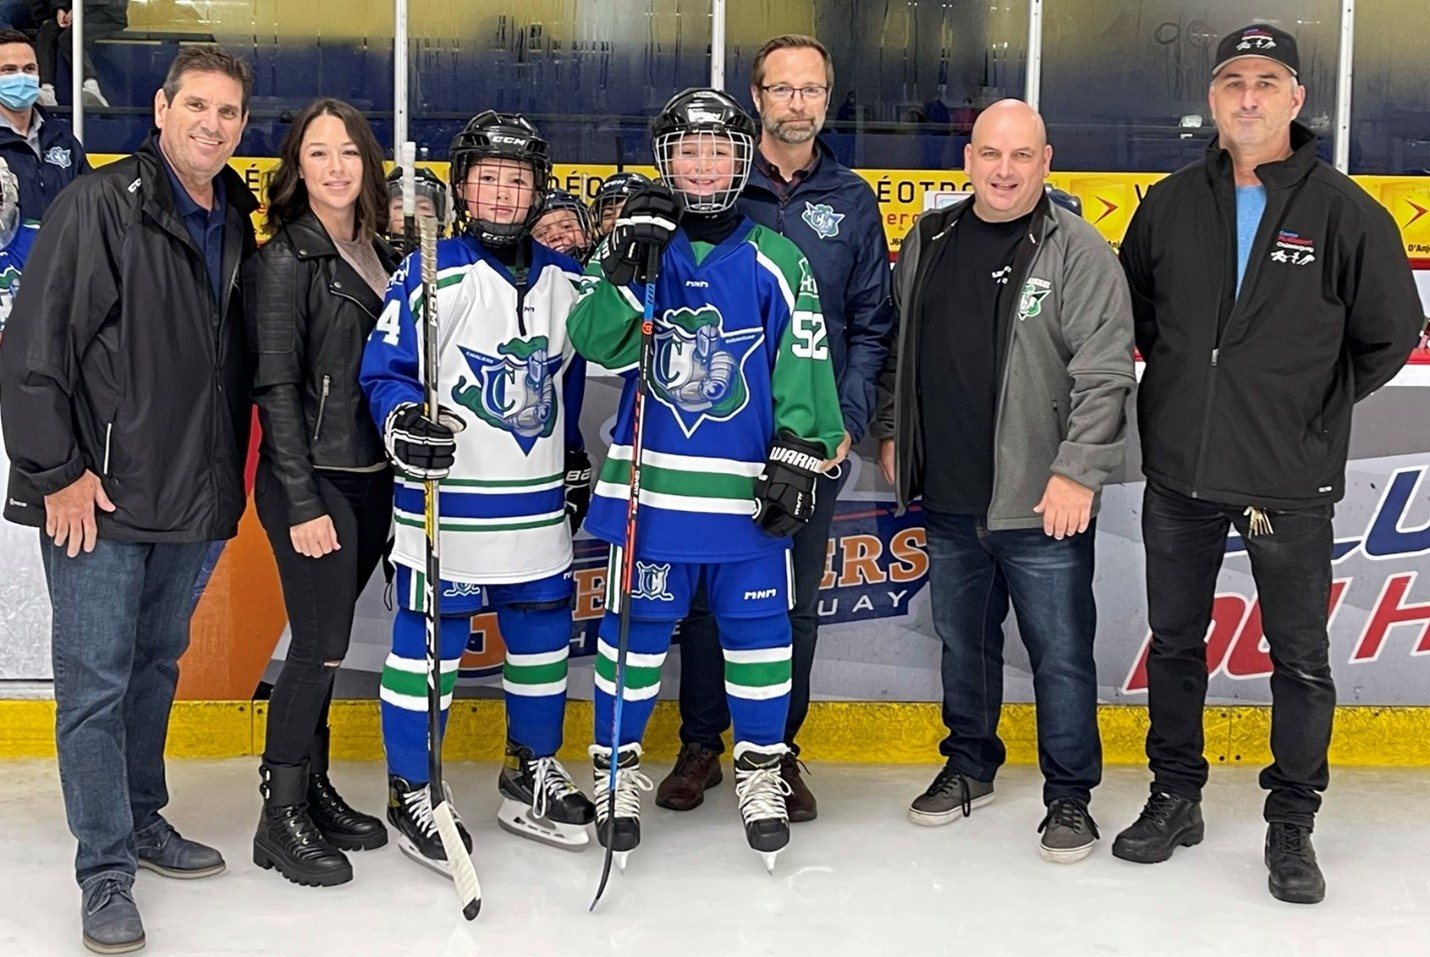 Le Soleil de Châteauguay |  Minor hockey is back in Châteauguay